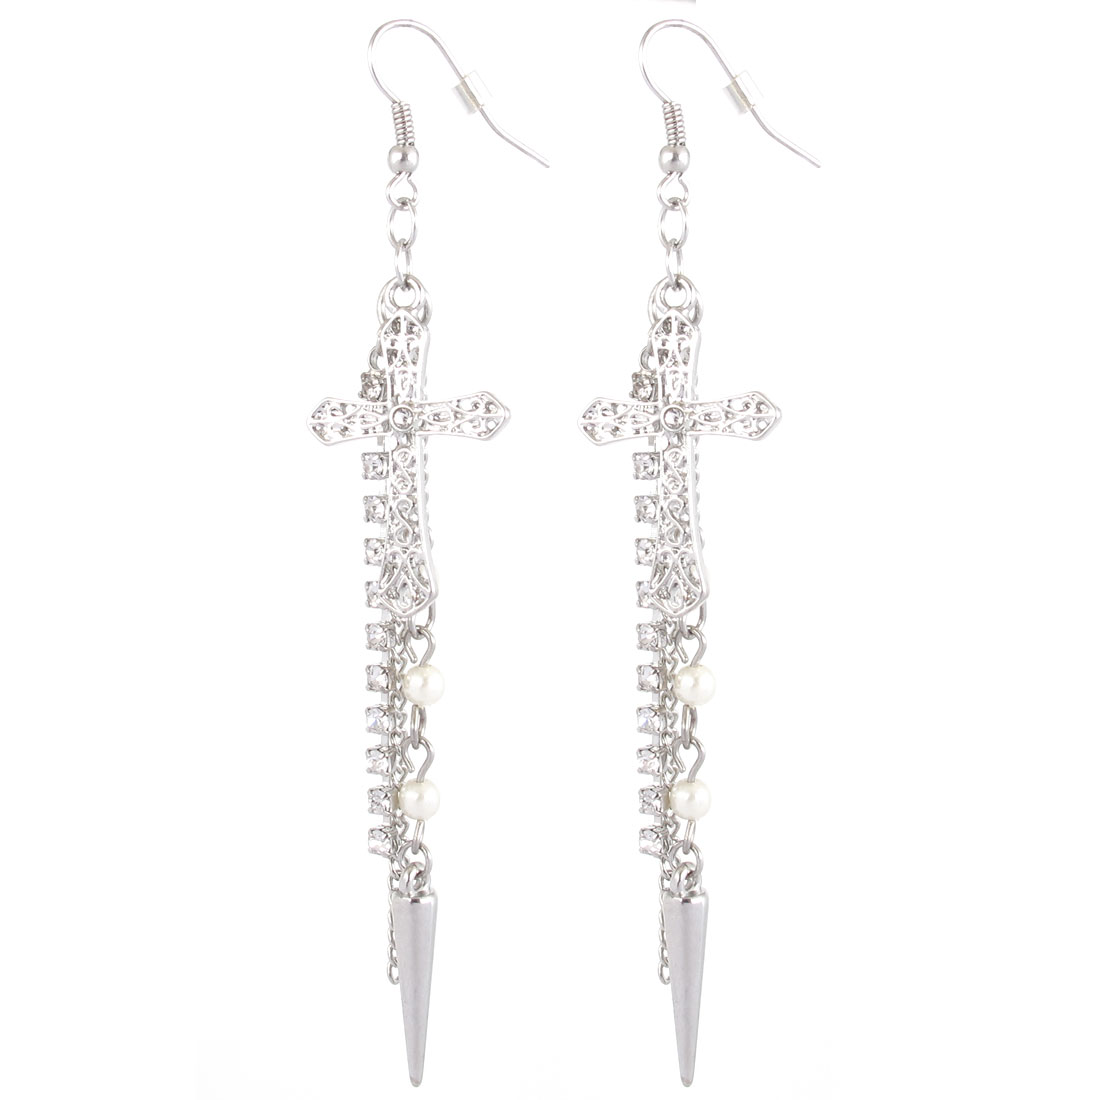 "Women Plastic Diamante White Beads Decor Chain Tassels Crux Design Hanging Pendant Metal Fish Hook Earrings Earbob Silver Tone 3.9"" Length Pair"